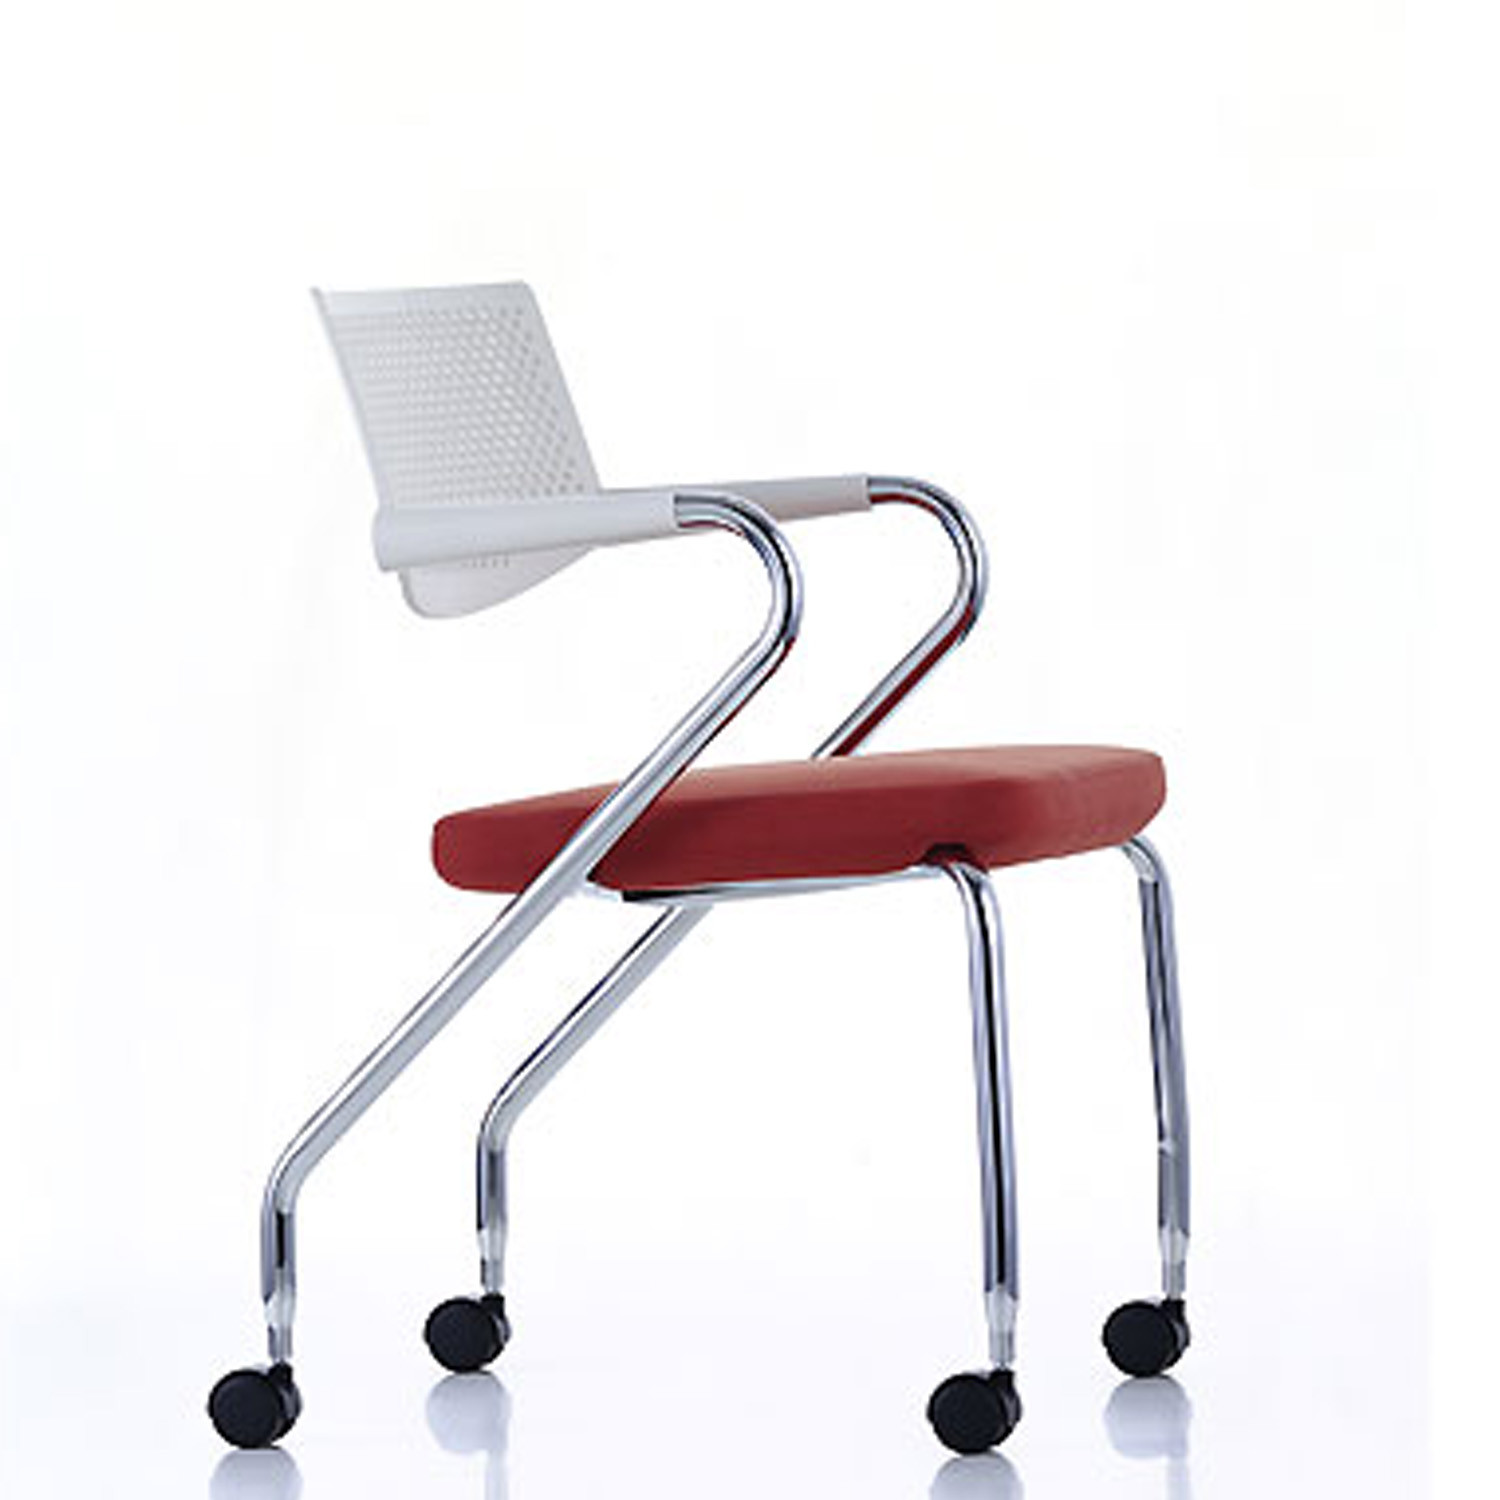 Visaroll 2 Chair on castors